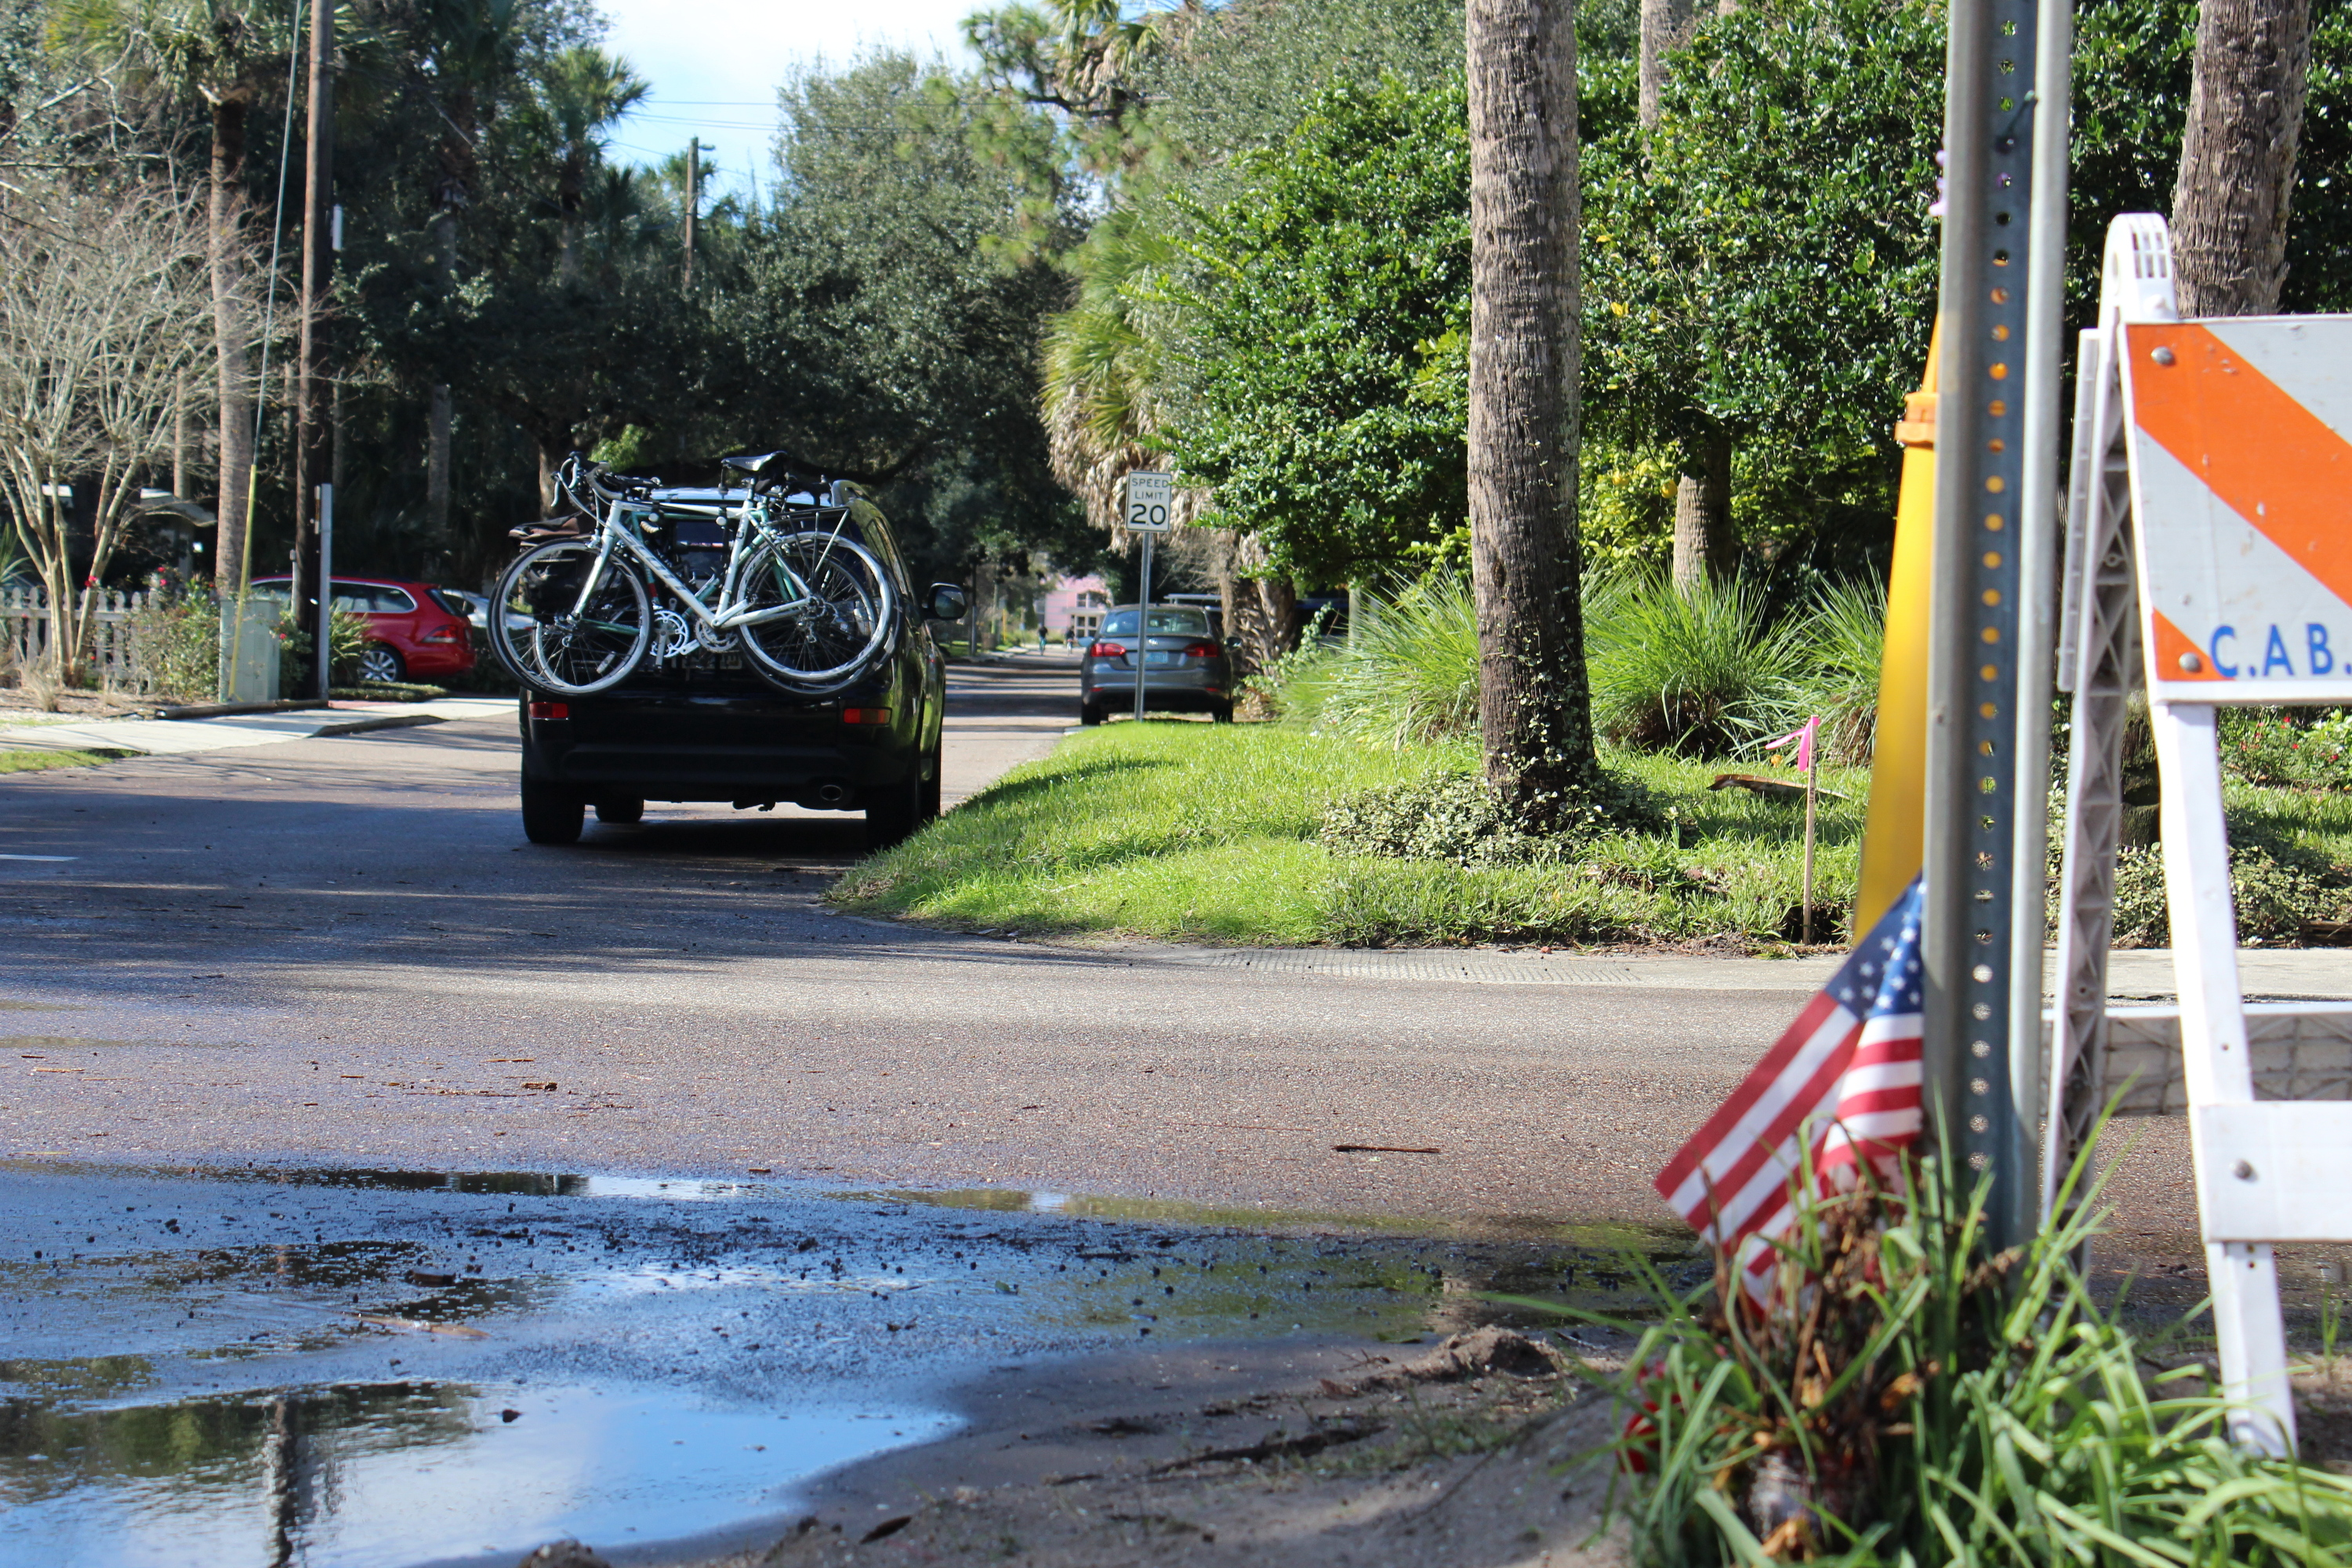 background image, Florida street scene with bikes on the back of a parked van